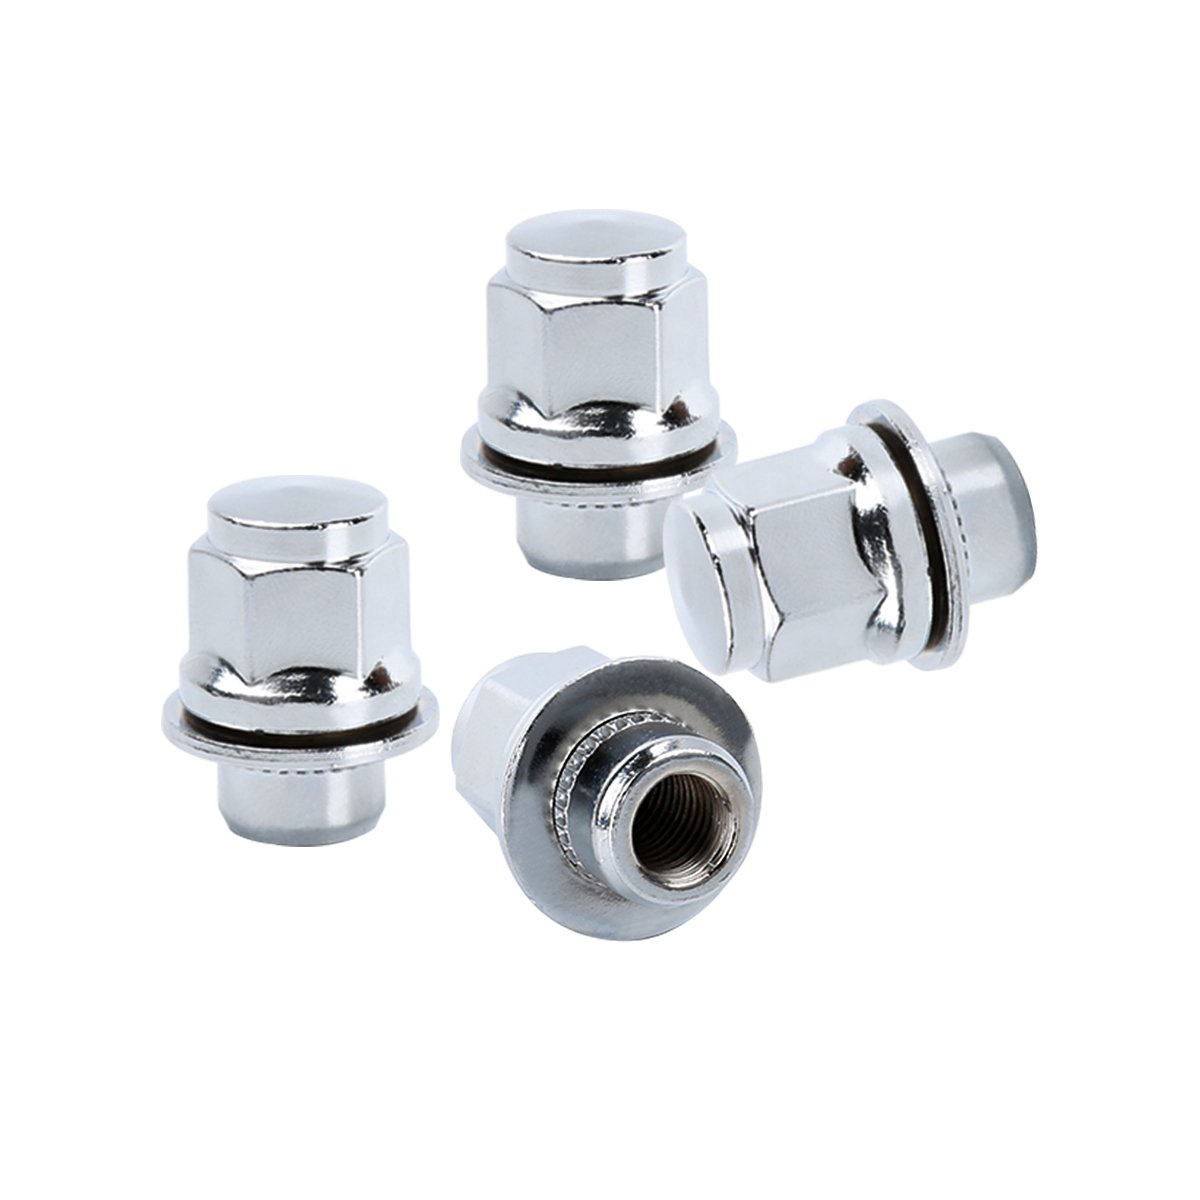 21mm Hex 13//16 Chrome Mag Style Lug Nuts with Washer Closed End for Toyota Lexus Scion Factory Aluminum Wheels Goldenlion KSP Performance 24PC 12x1.5 Thread Pitch